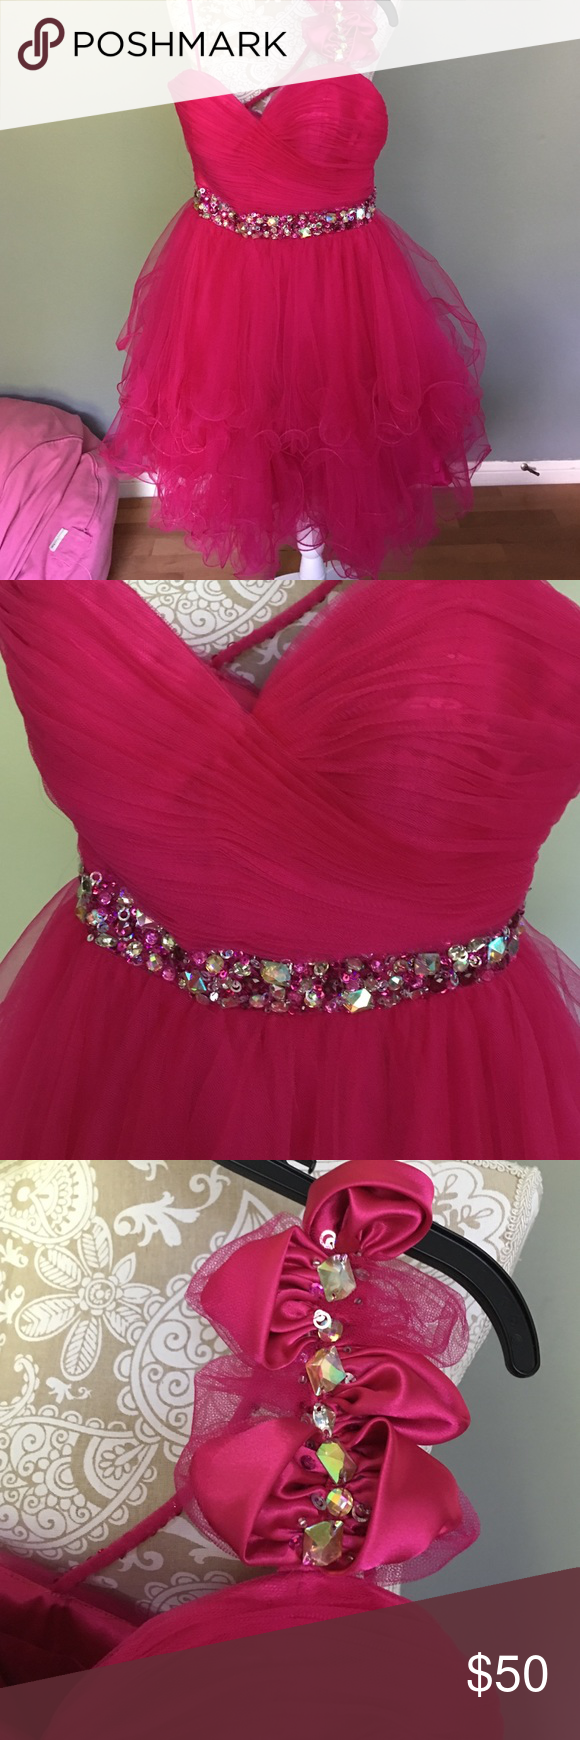 Beautiful prom dress pink tulle tulle dress and hot pink